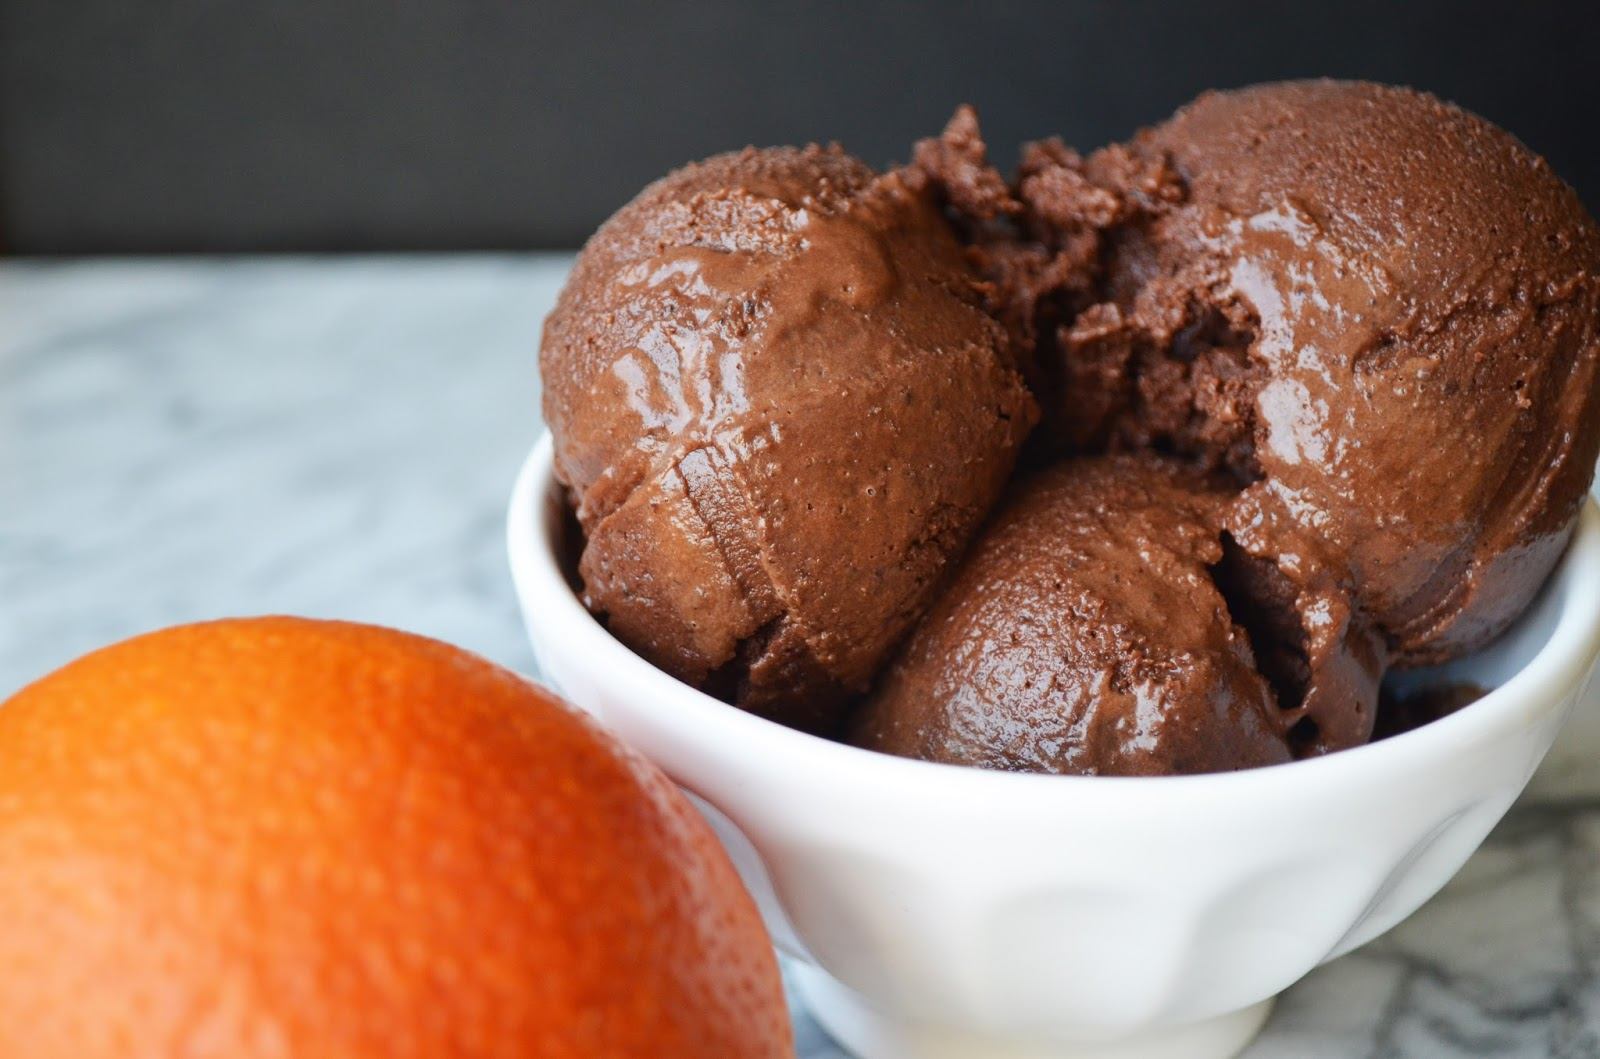 Creamy Blood Orange Dark Chocolate Sorbet